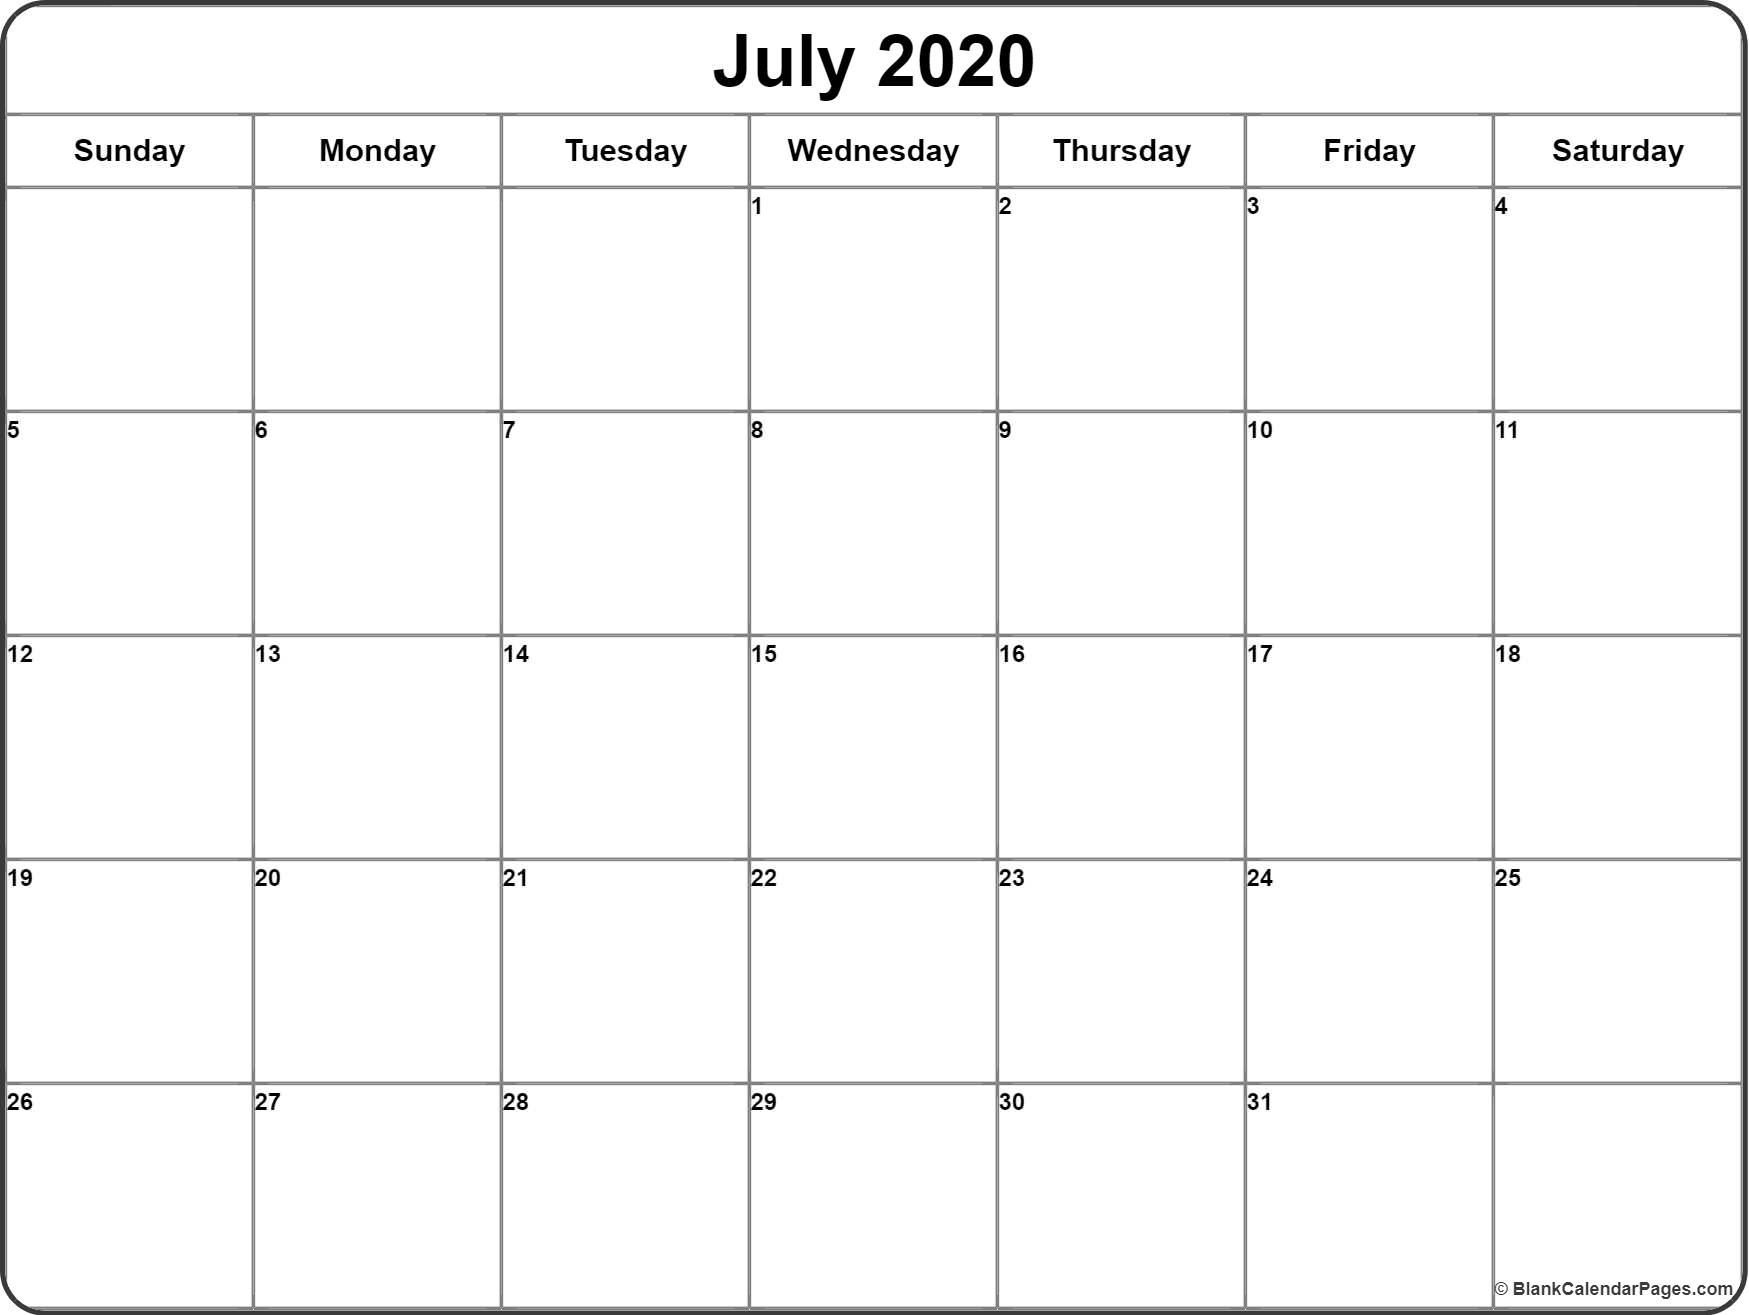 July 2020 Calendar   Free Printable Monthly Calendars pertaining to June July August 2020 Calendar